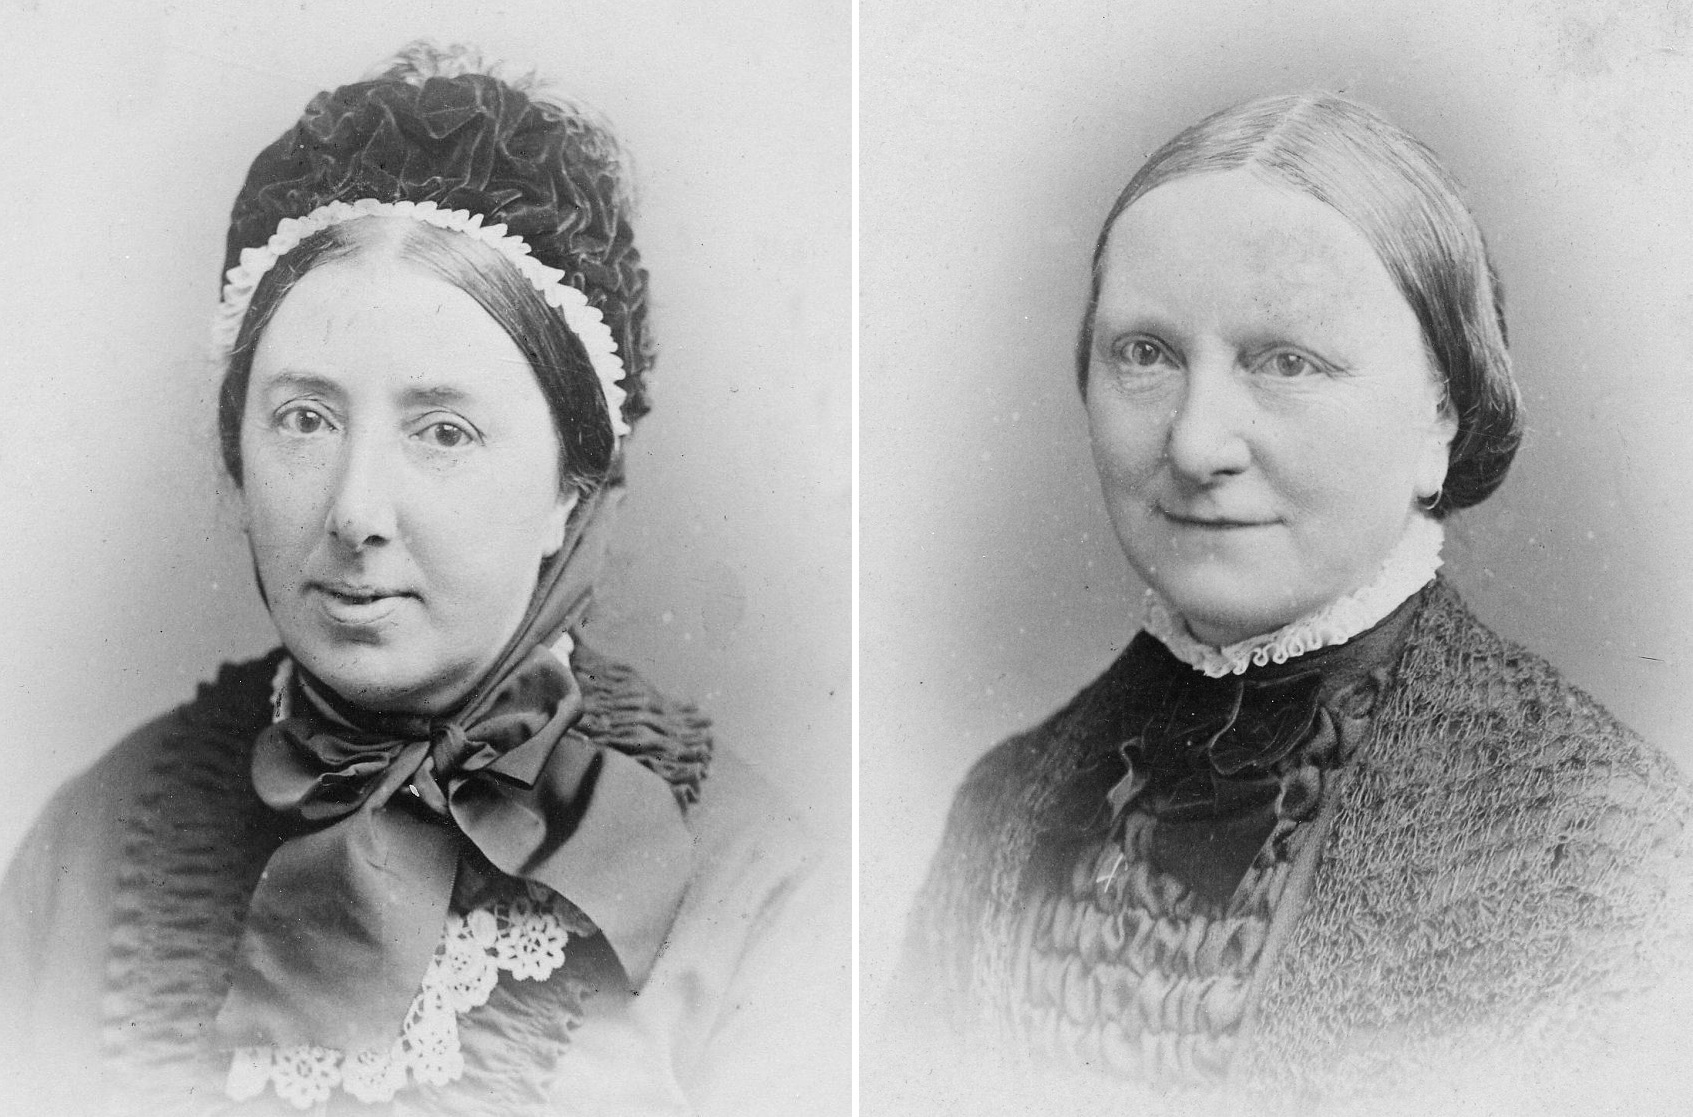 Eleanor (left) and Georgiana Ormerod. Photographs from the collections of Chepstow Museum, ©Monmouthshire Museums